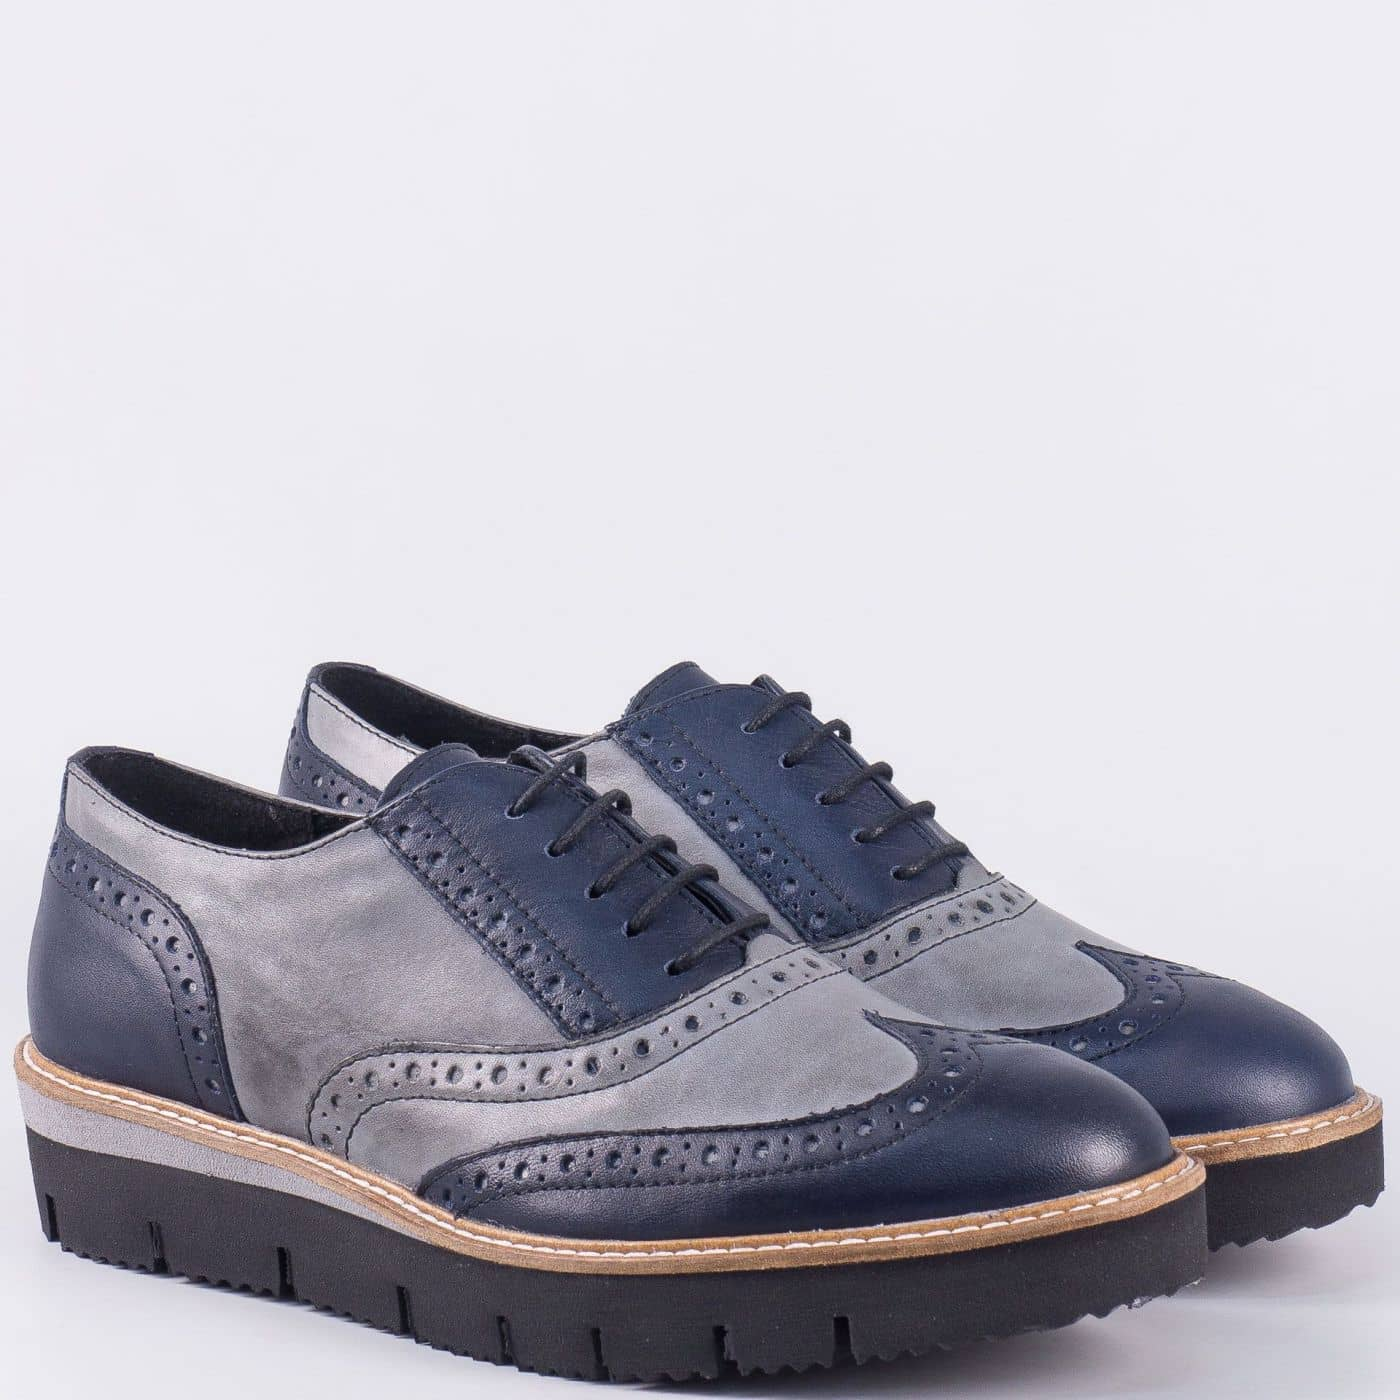 Gido Shoes Online